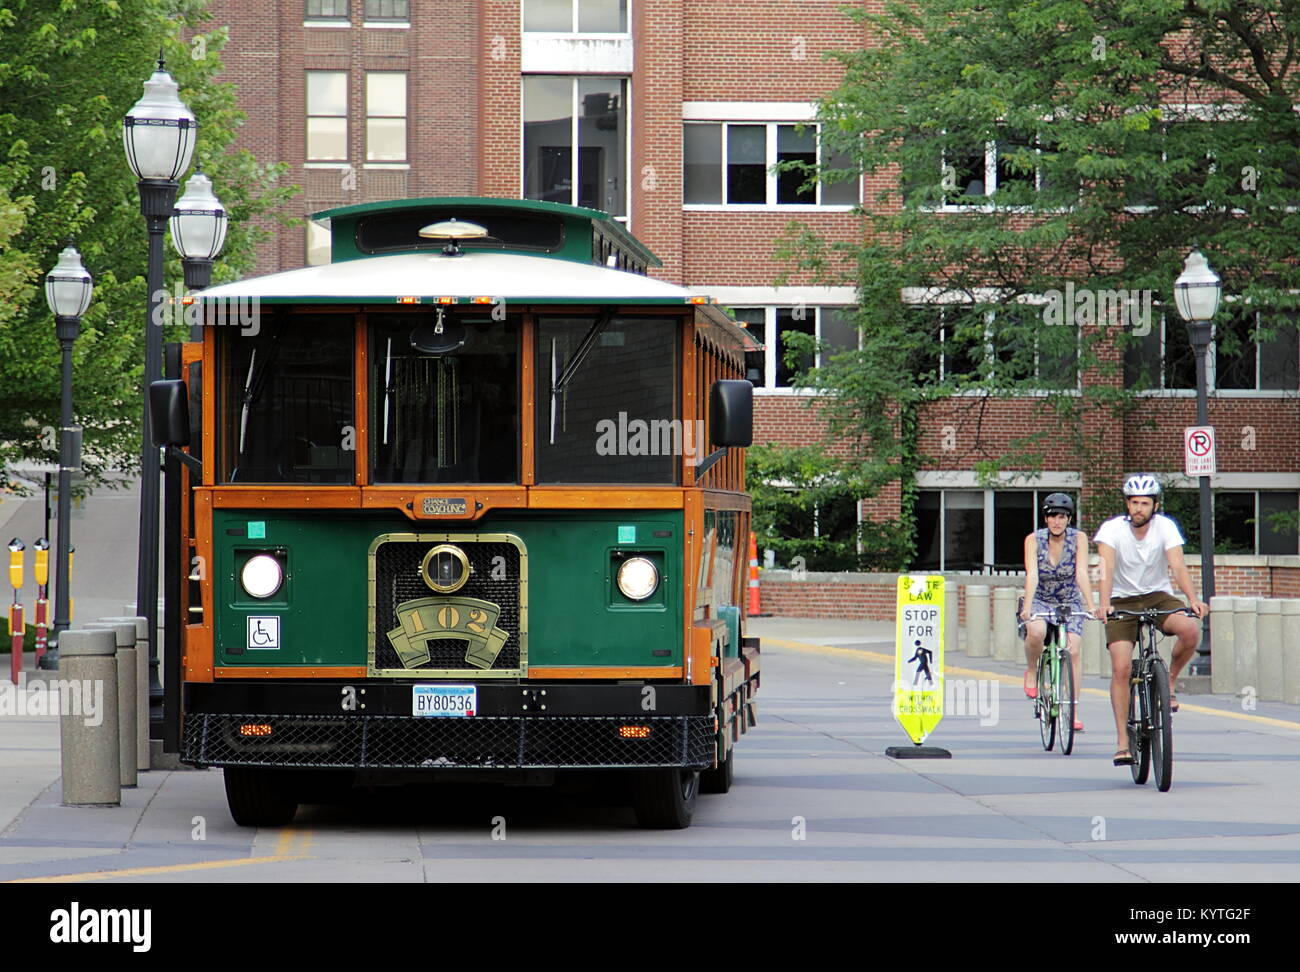 Minneapolis, Minnesota - July 8, 2015: a bus and two bicyclists in University of Minnesota - Stock Image